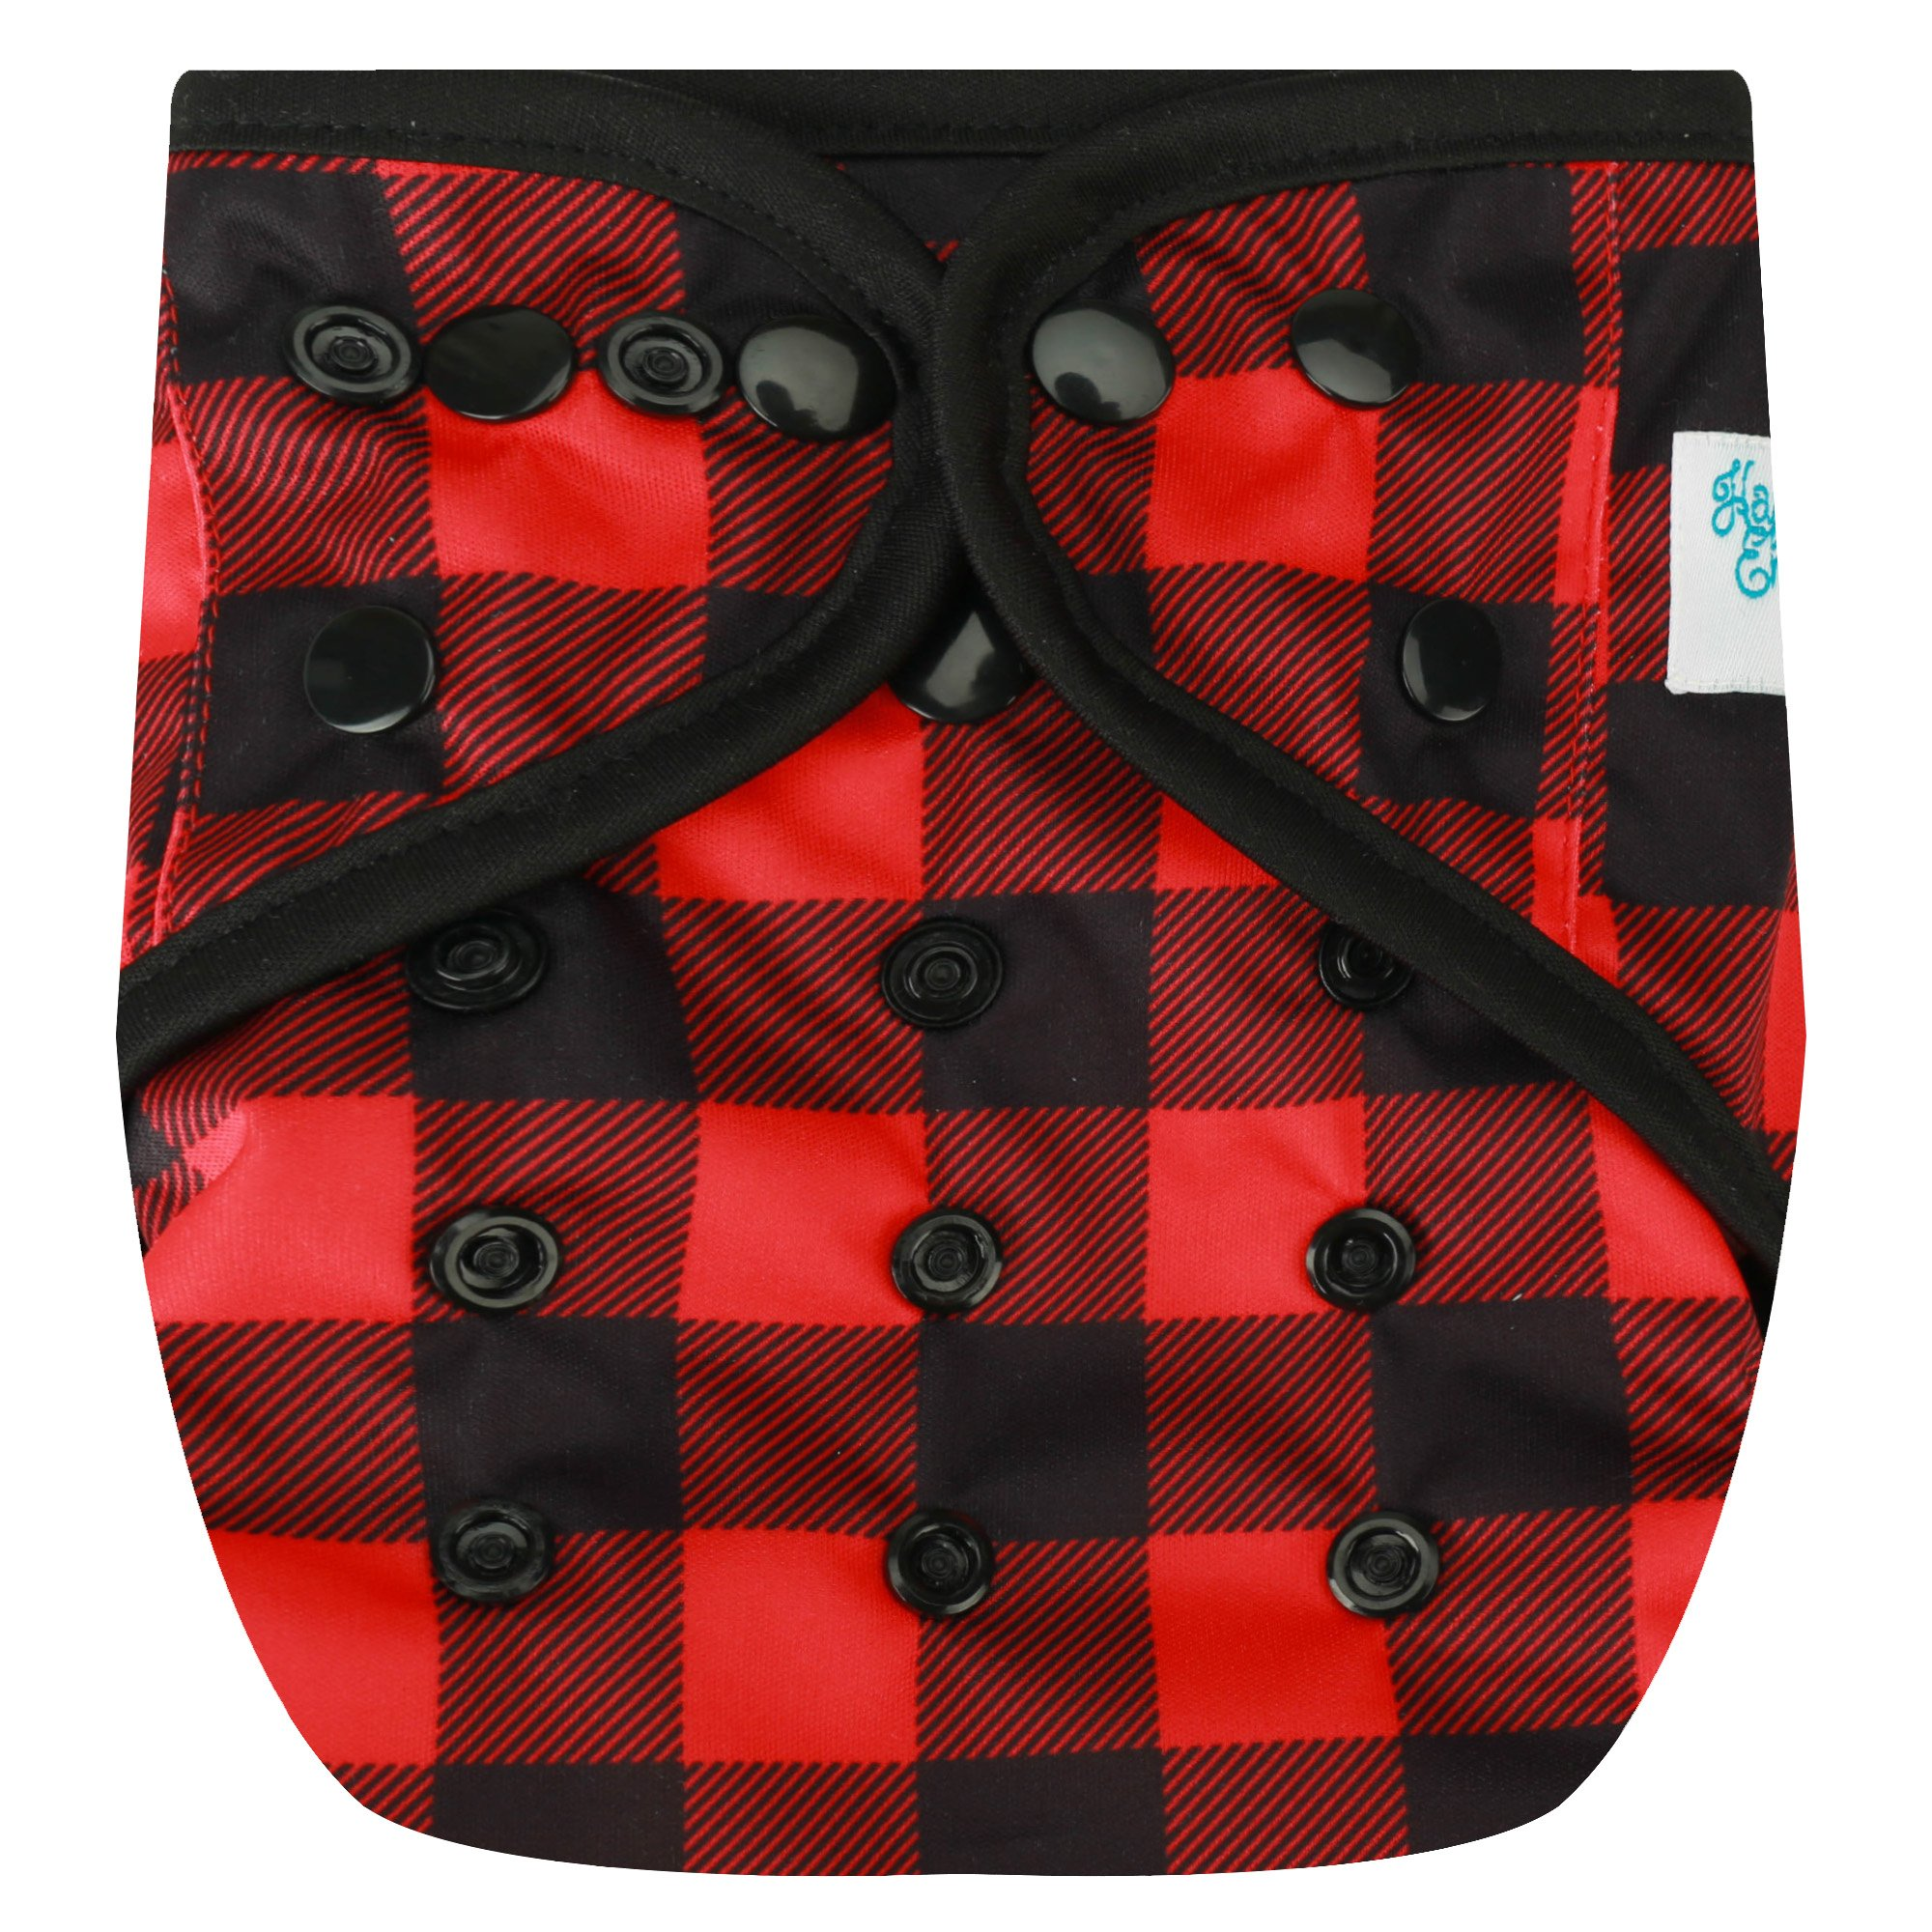 HappyEndingsTM One Size Cloth Diaper Cover AI2 System (Buffalo Plaid) by Happy Endings